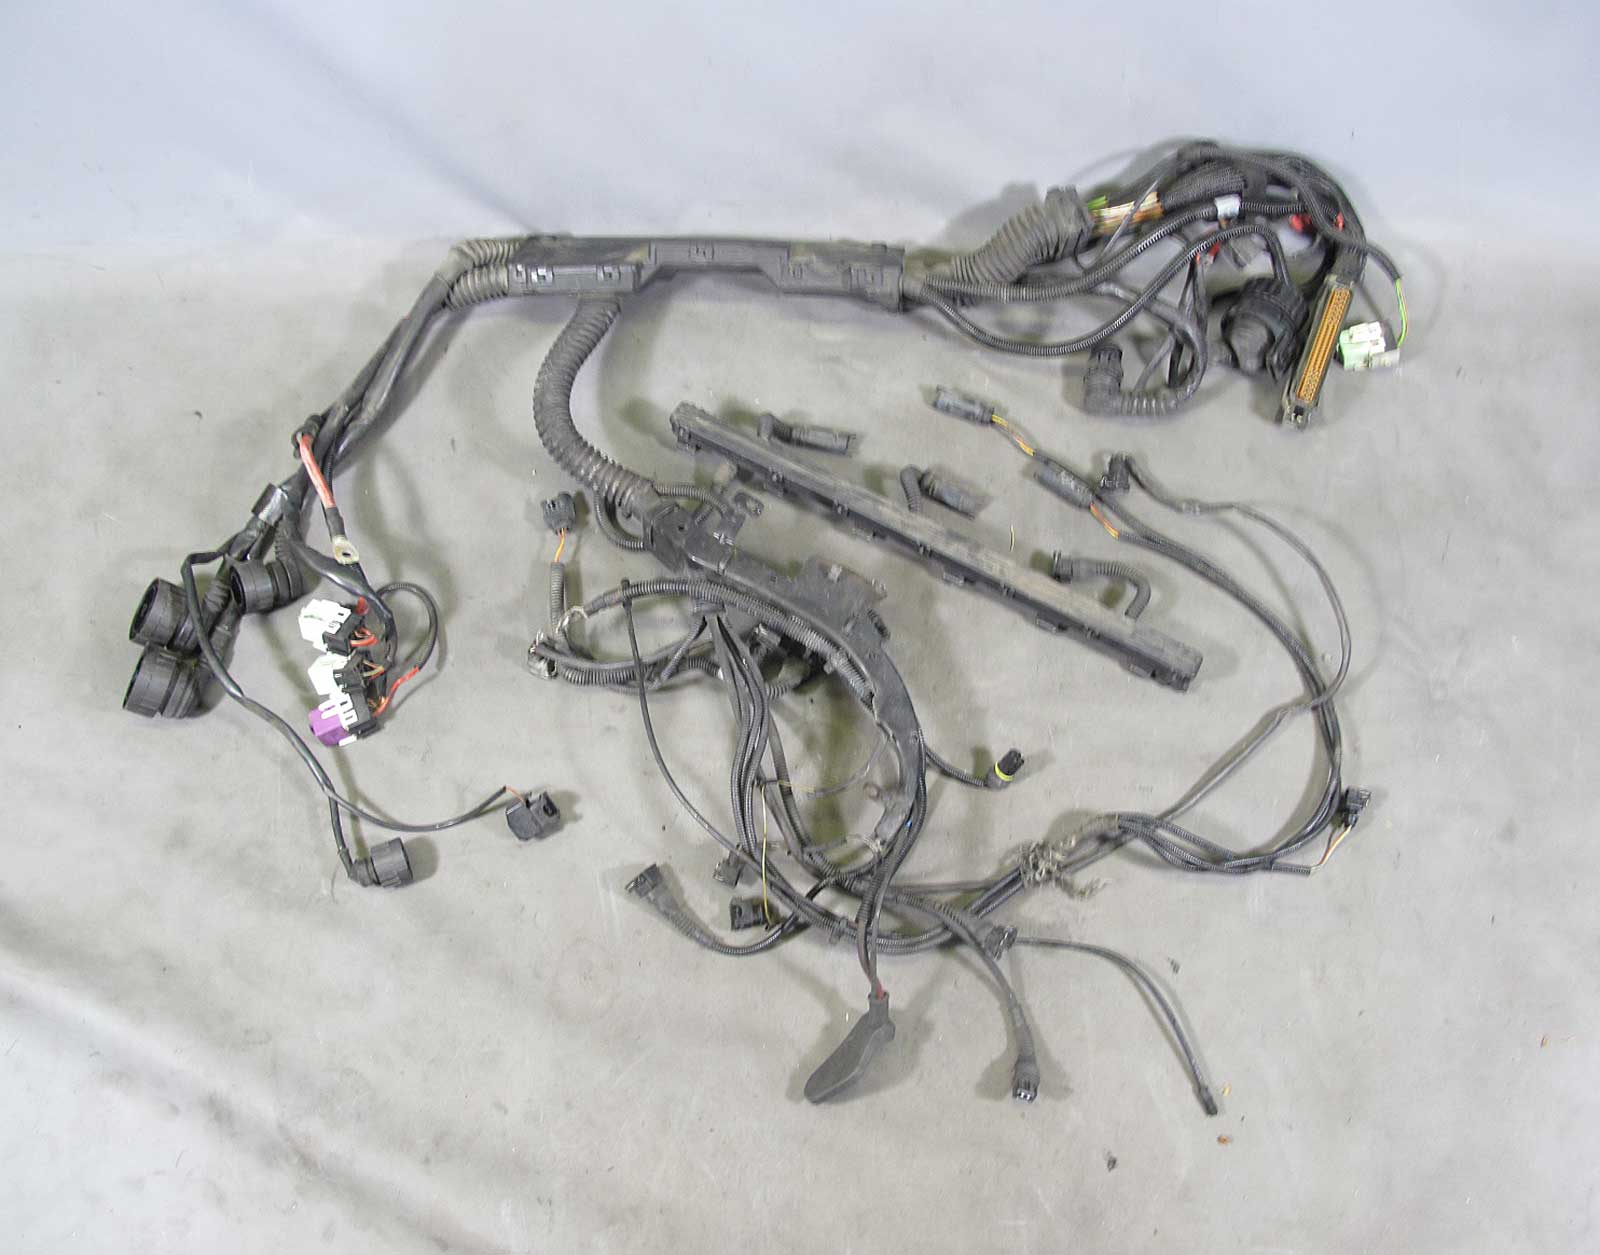 Motor Bmw E36 Arns De Cableado Manual Asc T 97 98 99 328i 328is Radio Harness Wires Engine Wiring 328ic M3 Used